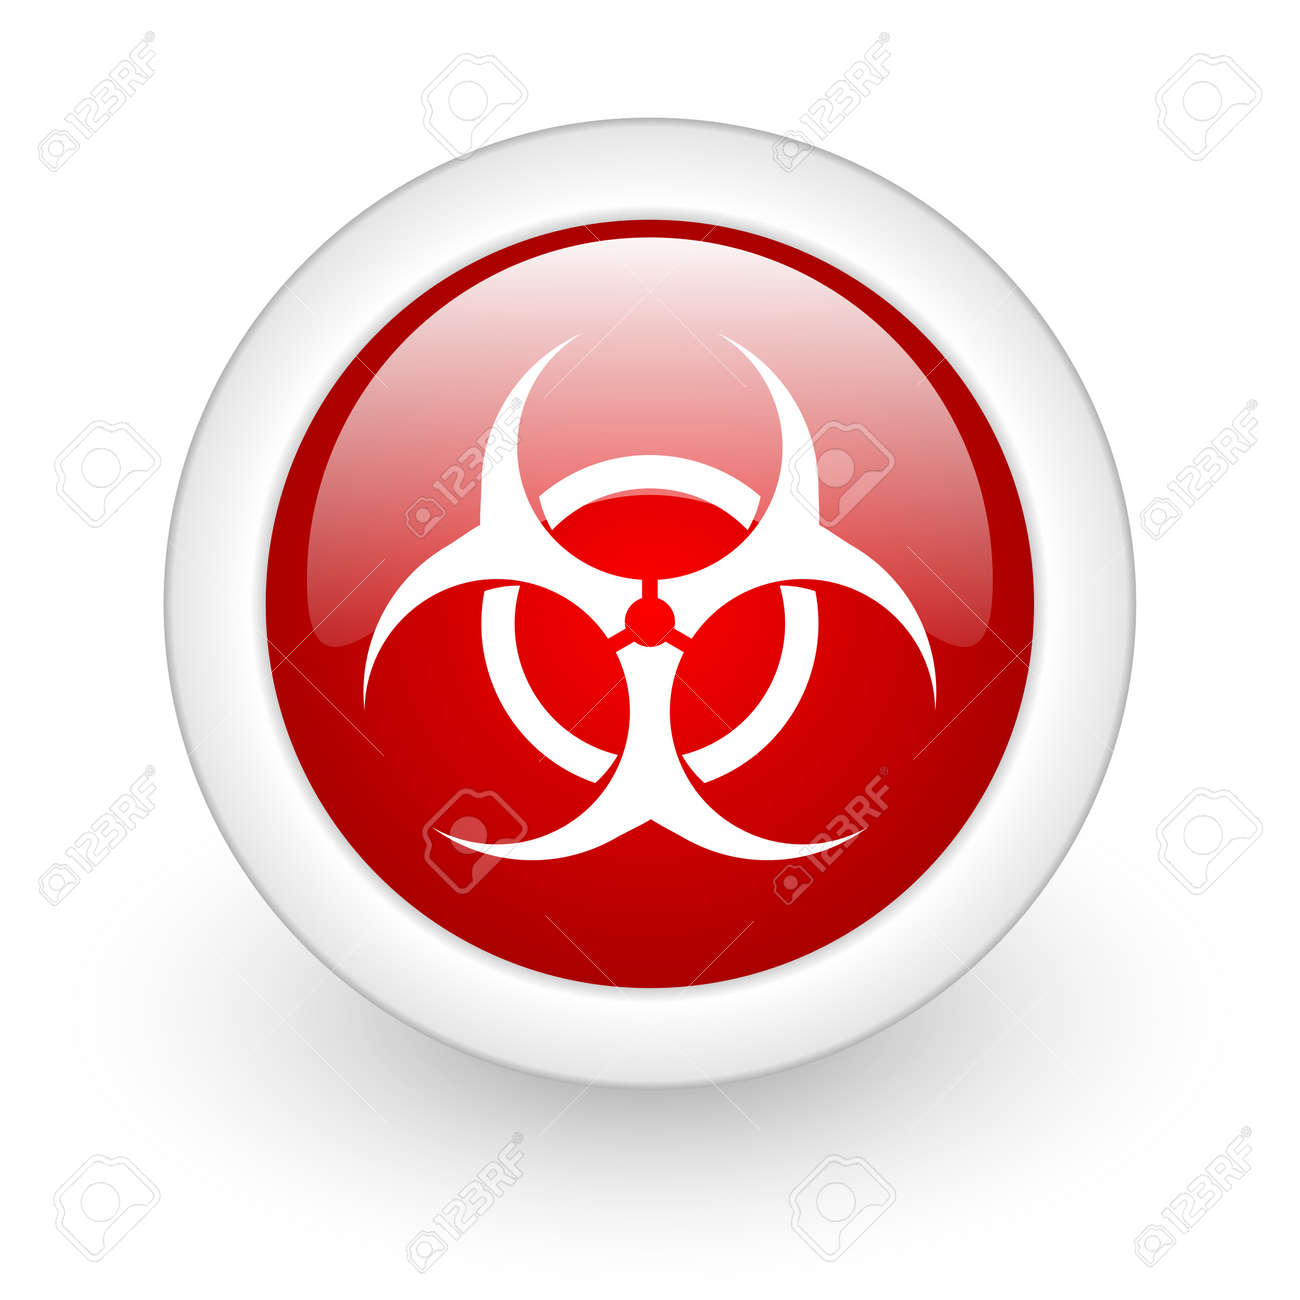 virus red circle glossy web icon on white background Stock Photo - 17980301